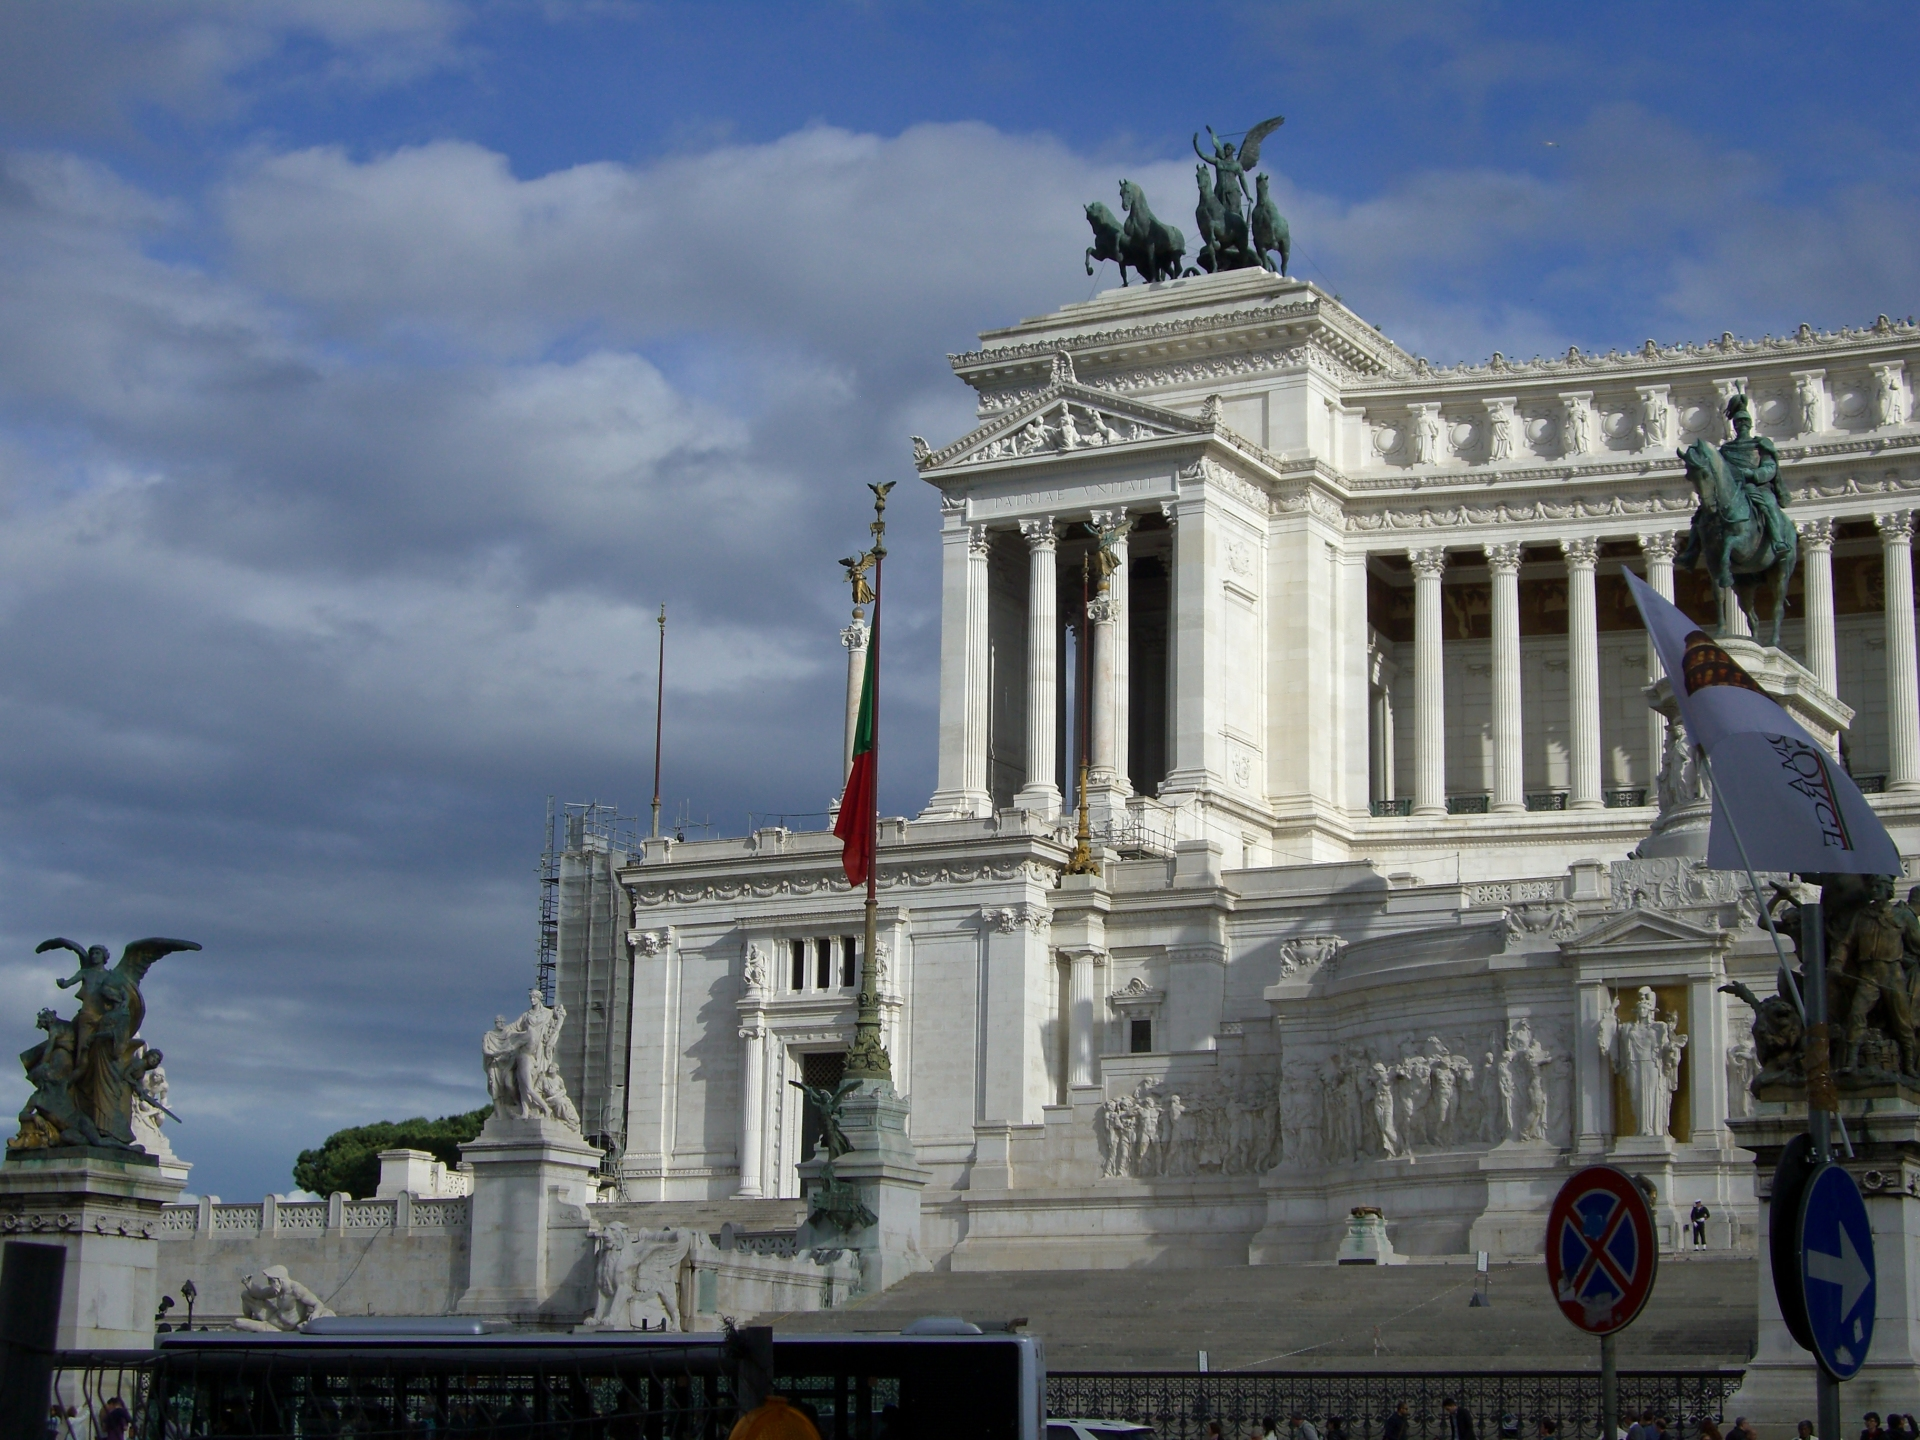 The Vittorio Emanuele II Monument